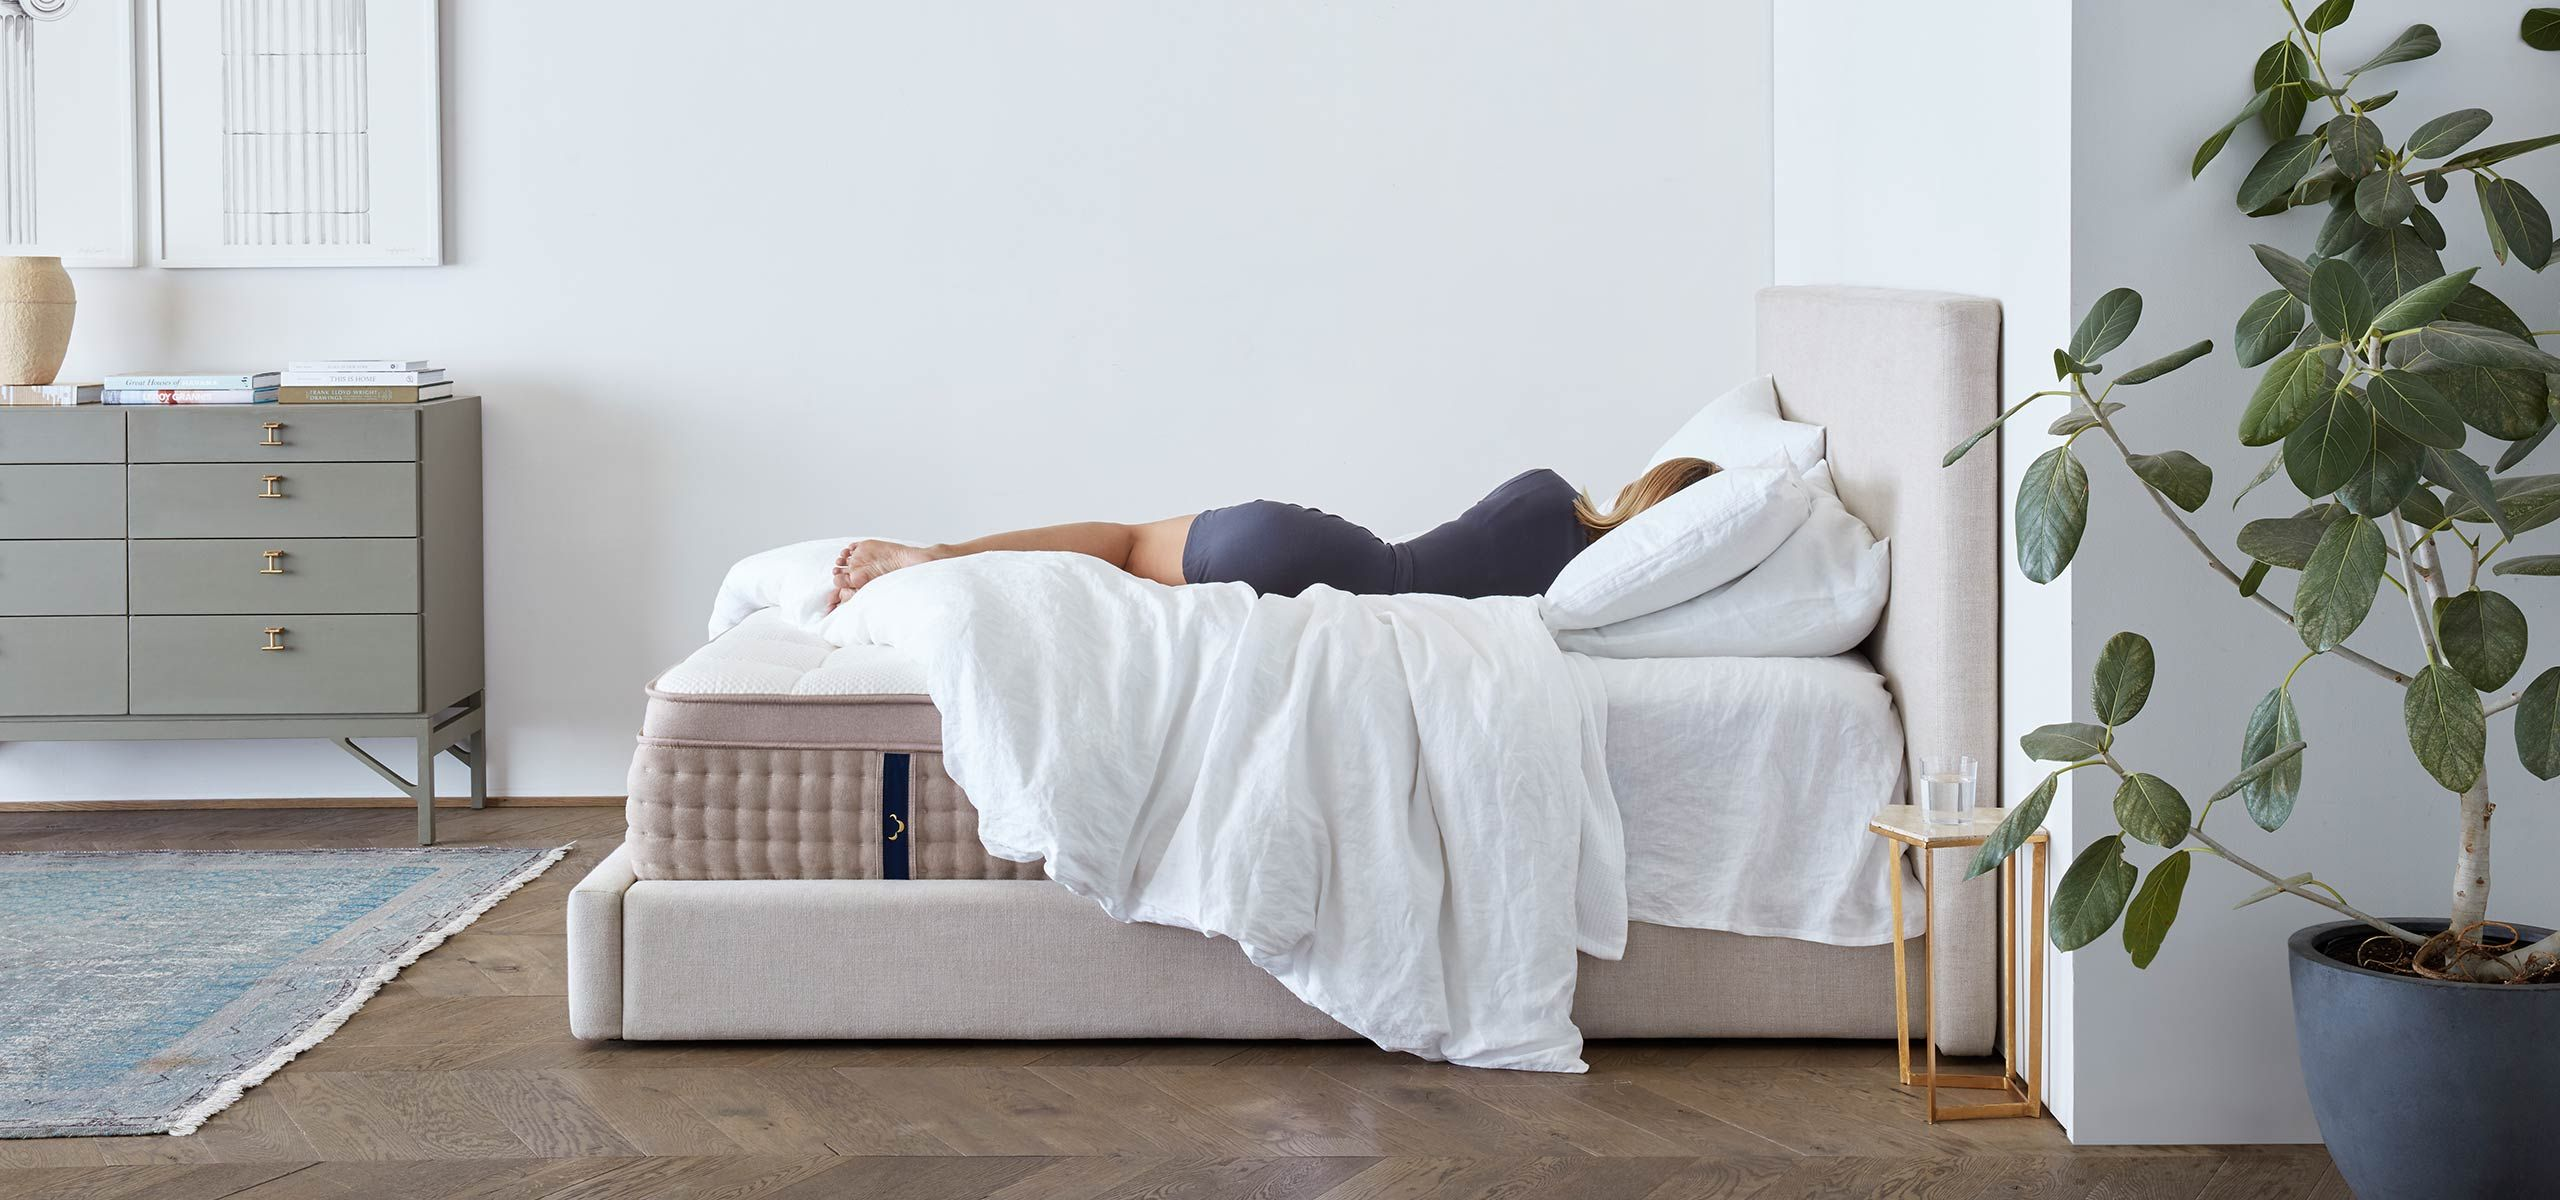 King Luxury Hybrid Mattress Crafted with Premium Materials Imagine what's possible after a perfect night's sleep. DreamCloud's hybrid mattress offers luxury-level comfort with multiple layers of the softest and most supportive premium materials.